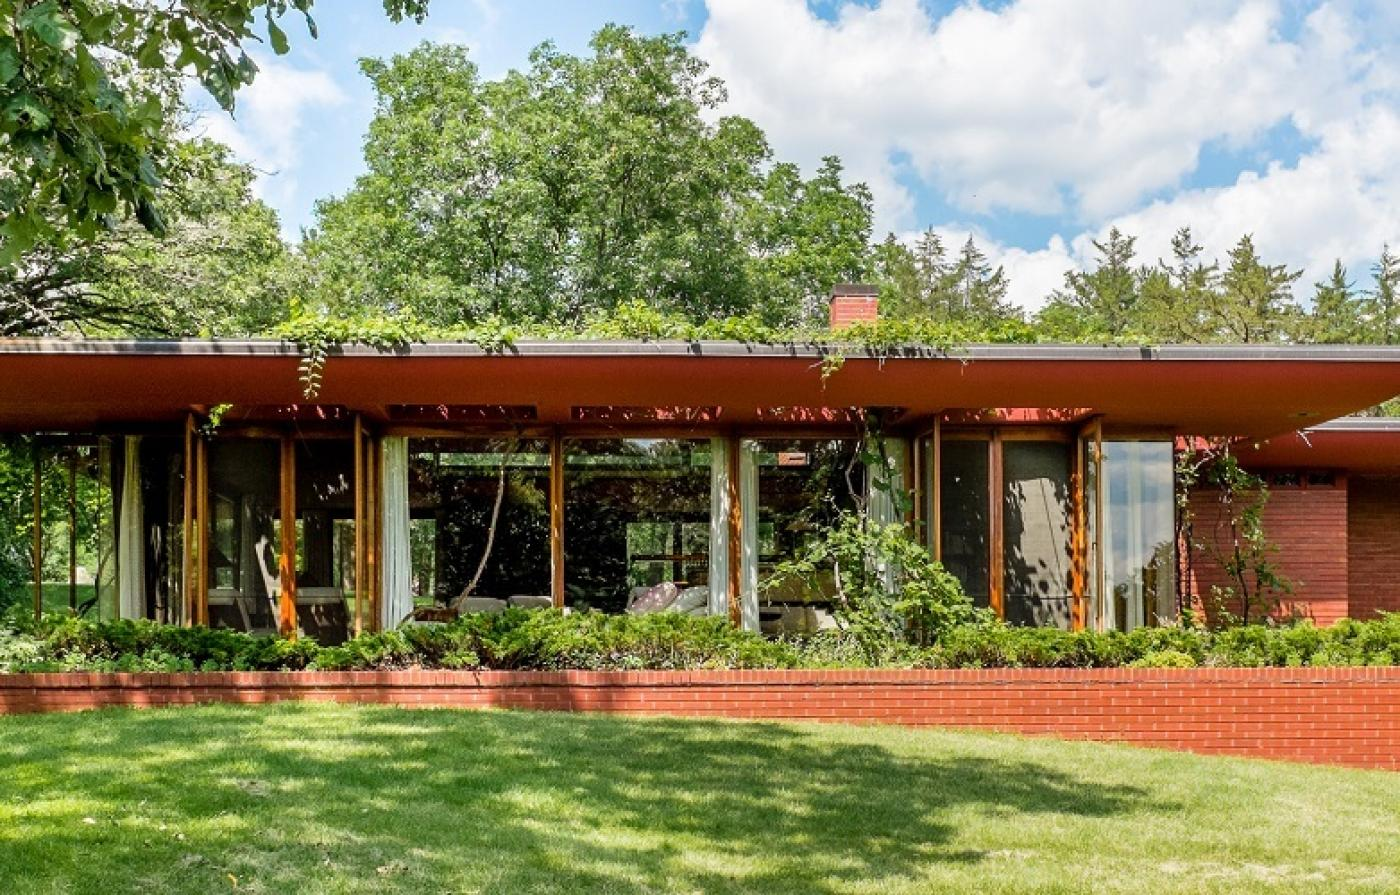 5 Serene Frank Lloyd Wright Houses Worth Slipping Away to This Summer